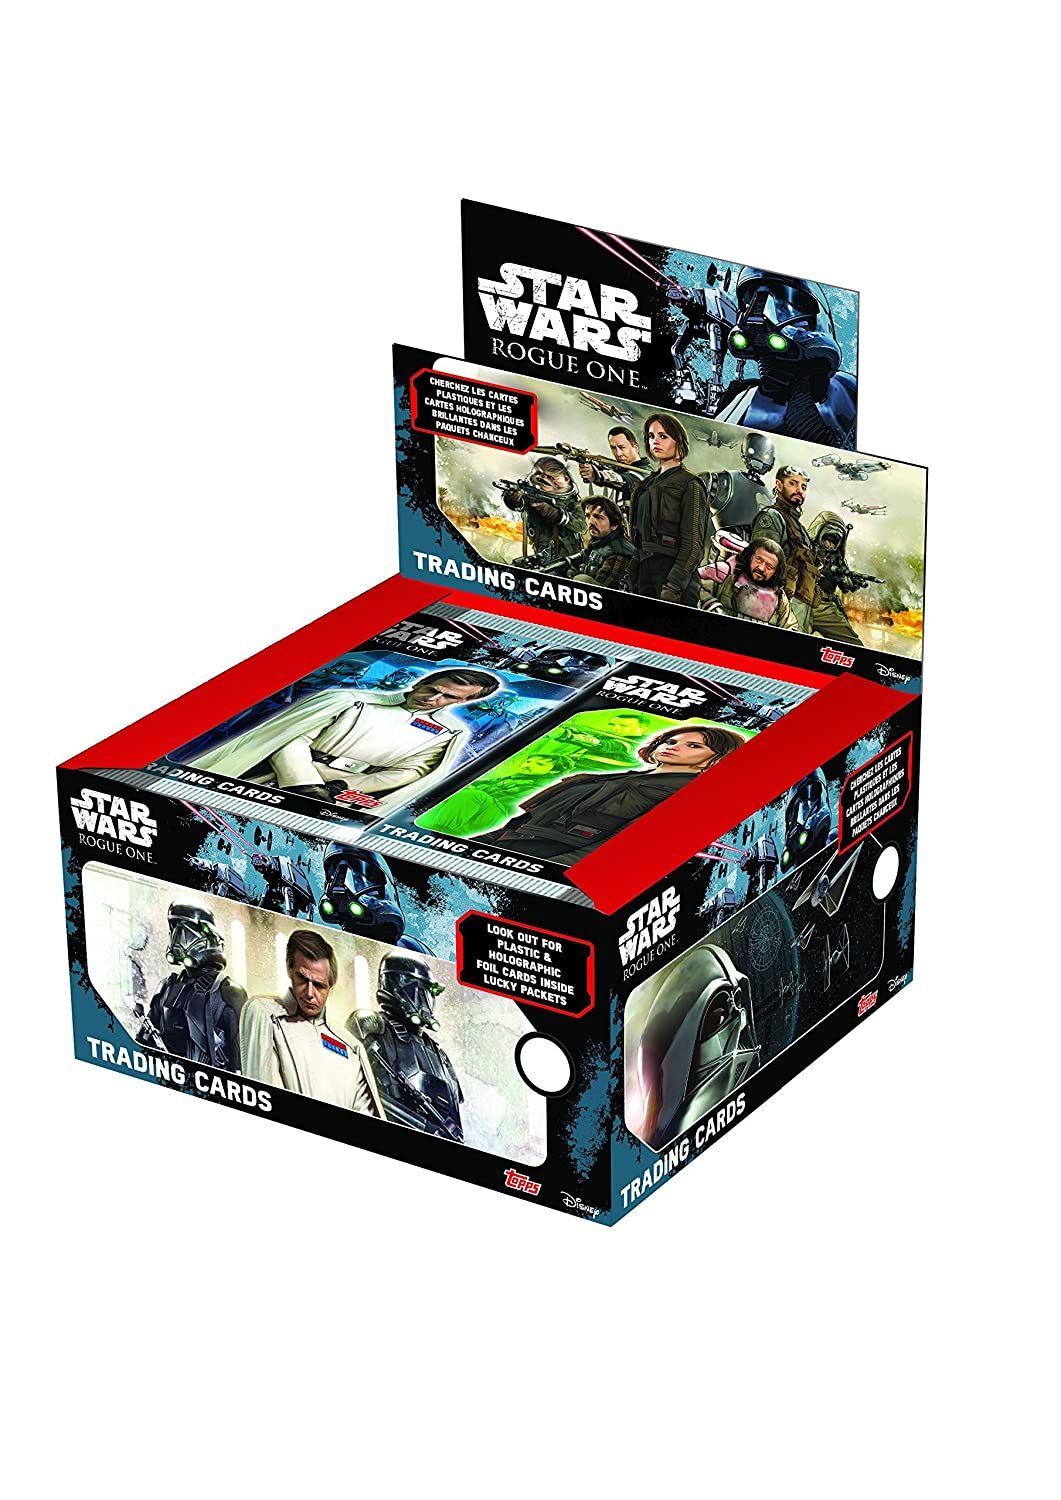 Topps D105813-DE2-D - Star Wars Rogue One Sammelkarten, Display mit 50 Boostern, 5 Karten